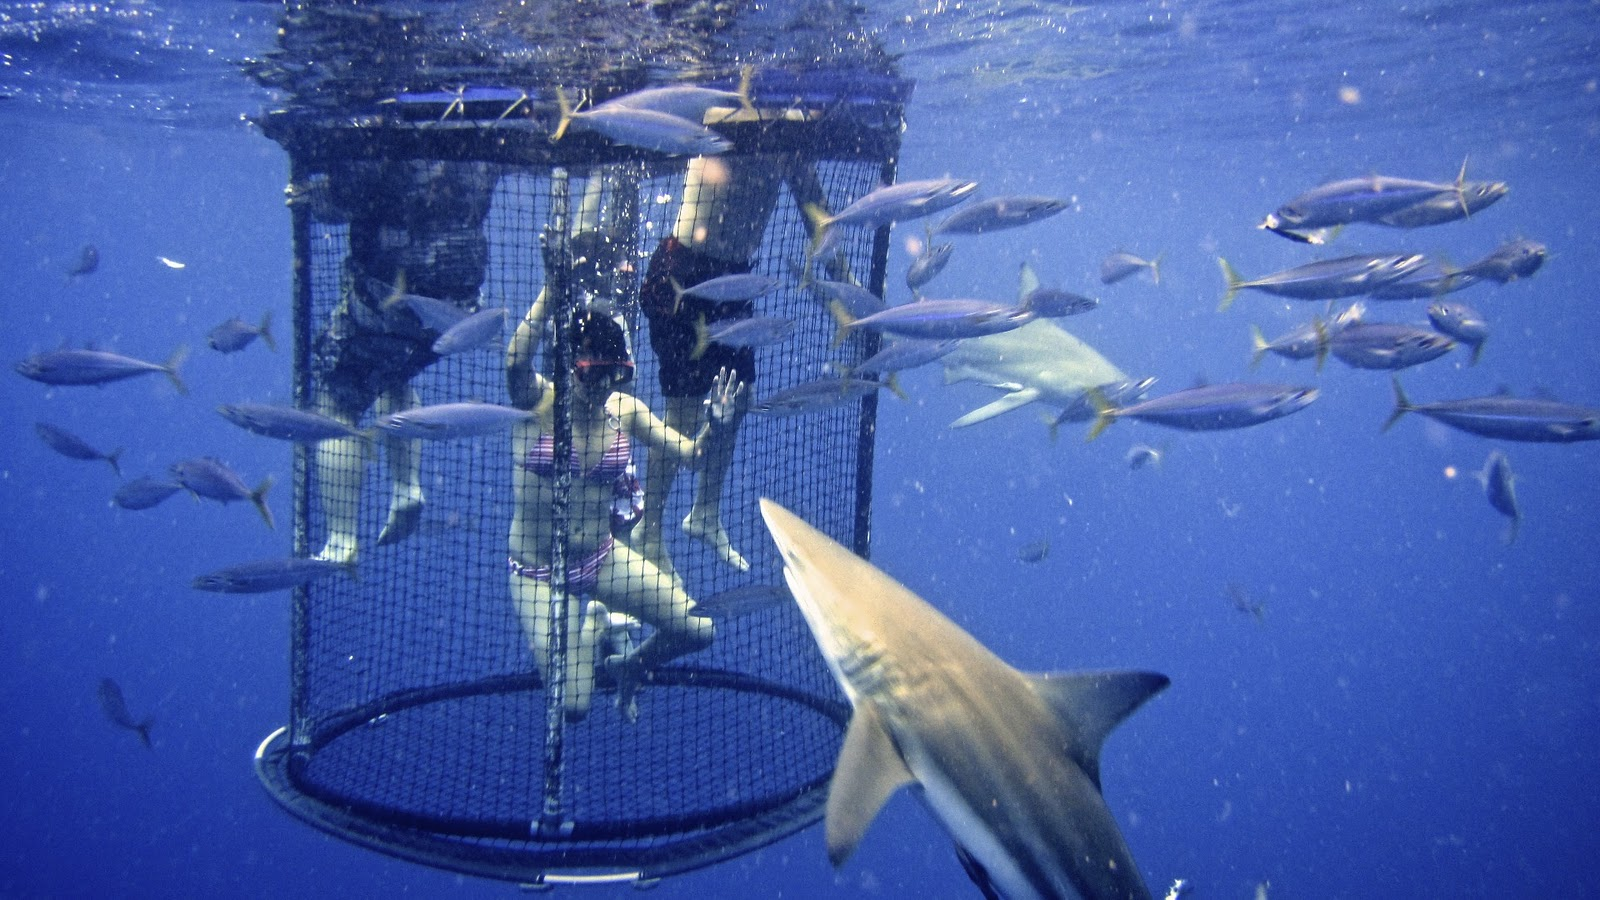 shark cage diving History of shark cage diving great white shark cage diving has, in recent years, become one of the most popular adventure activities amongst adrenalin junkies, divers & tourists.